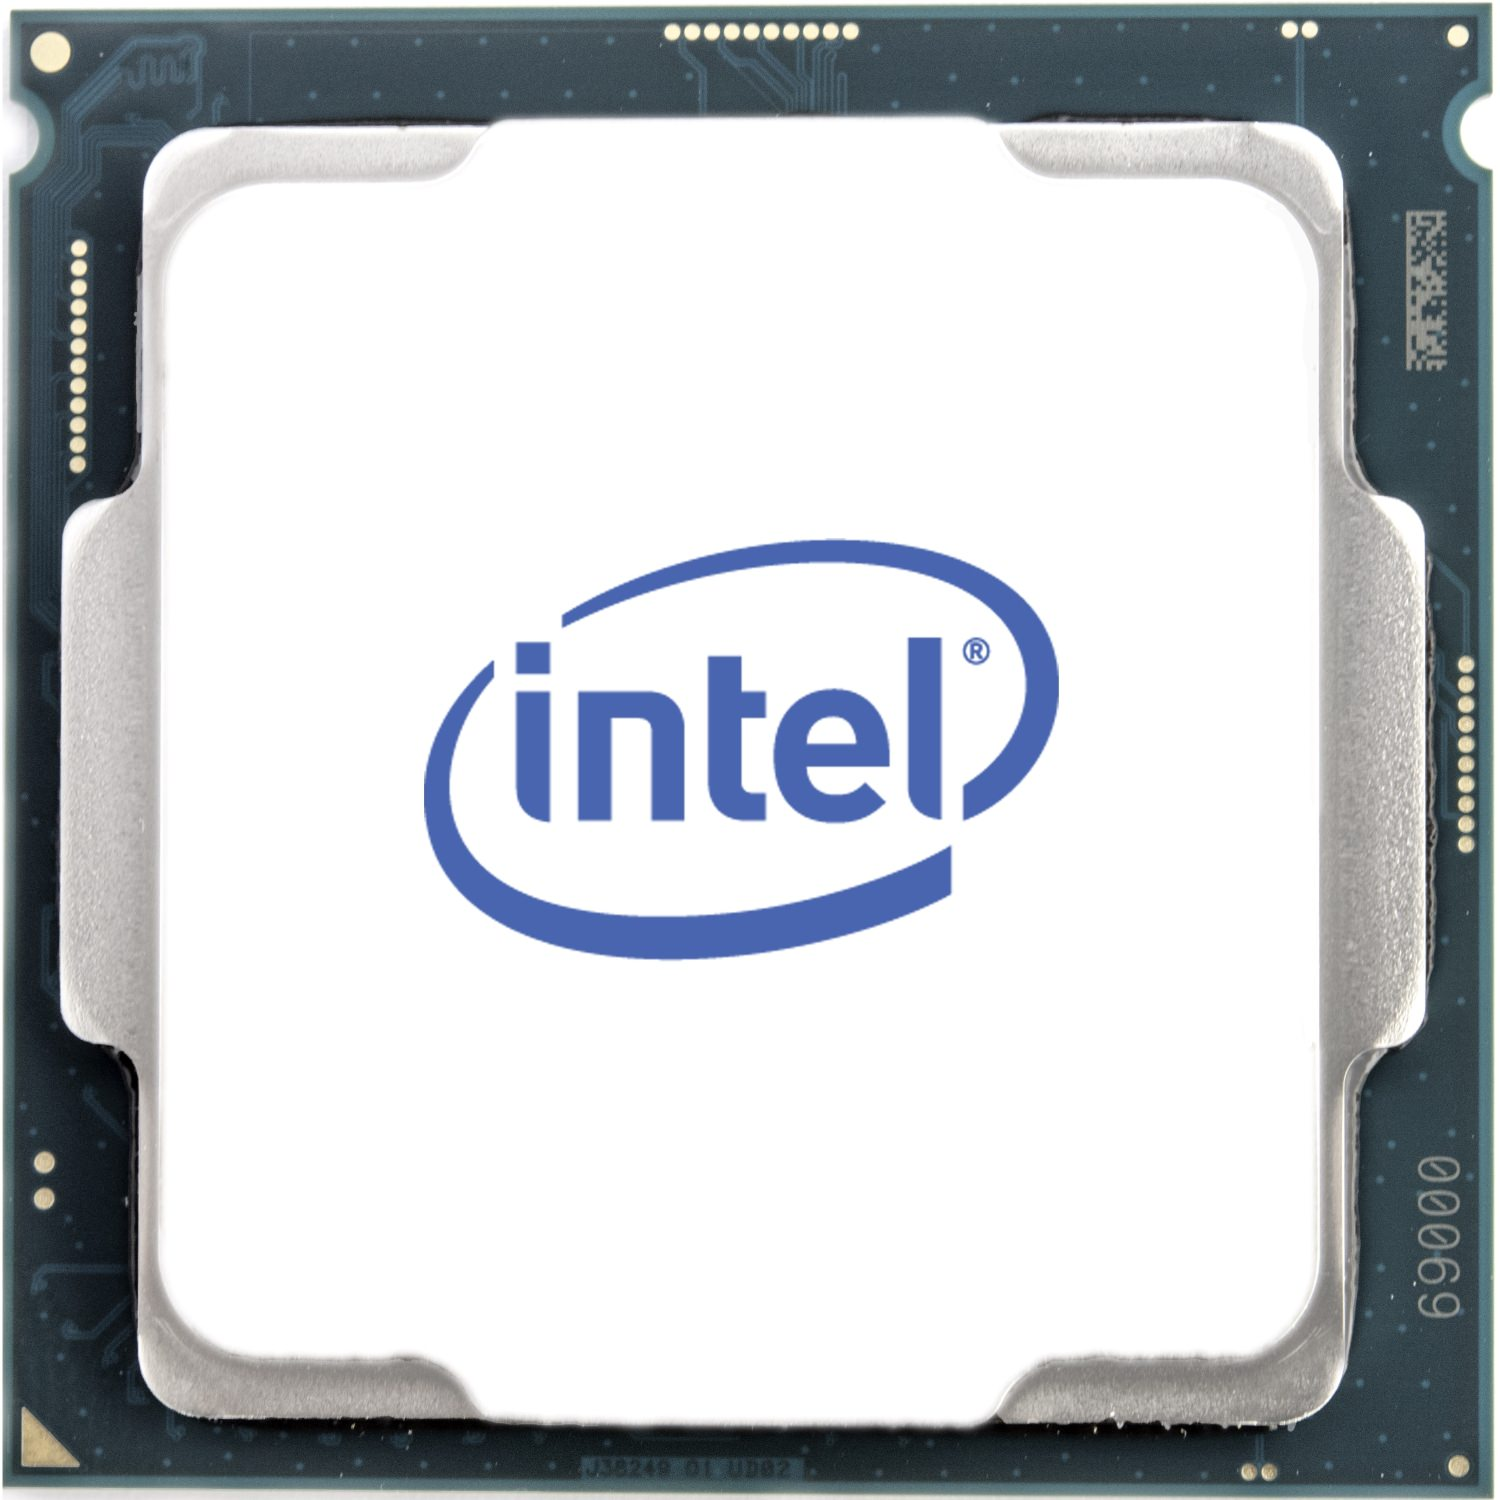 Intel Celeron G4900 Processor